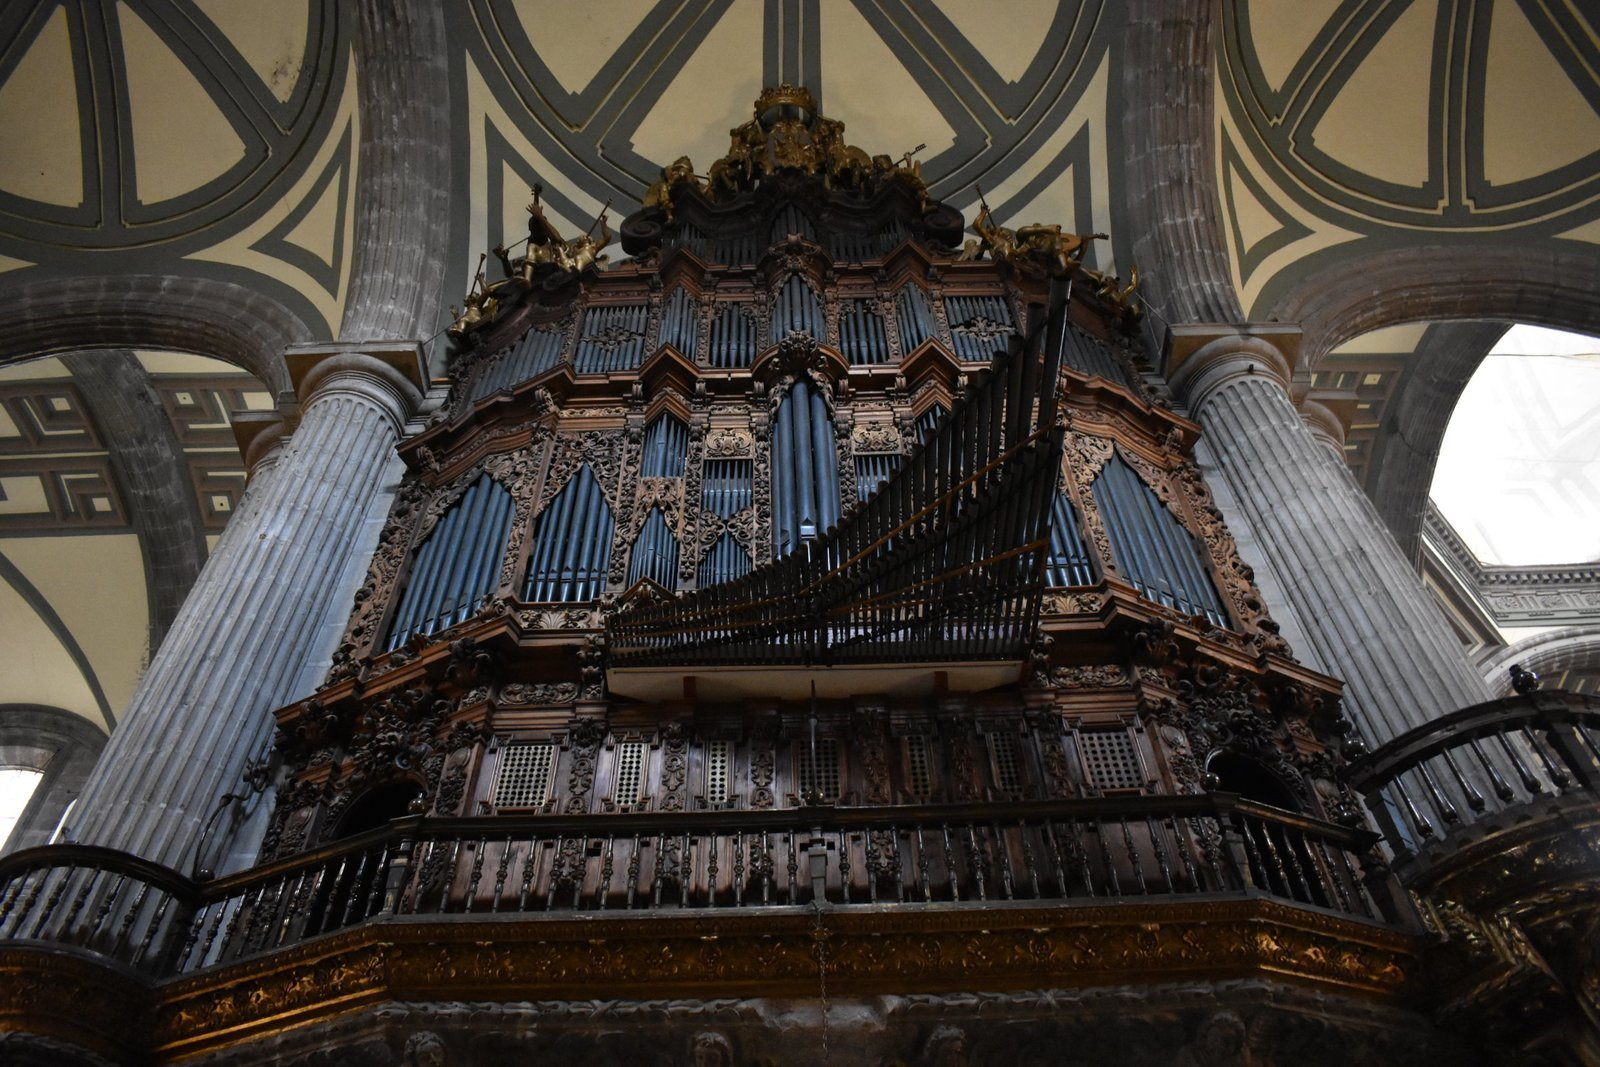 Image: The pipes of the organ inside of the Metropolitan Cathedral in Mexico City, where Manuel de Zumaya was chapelmaster.